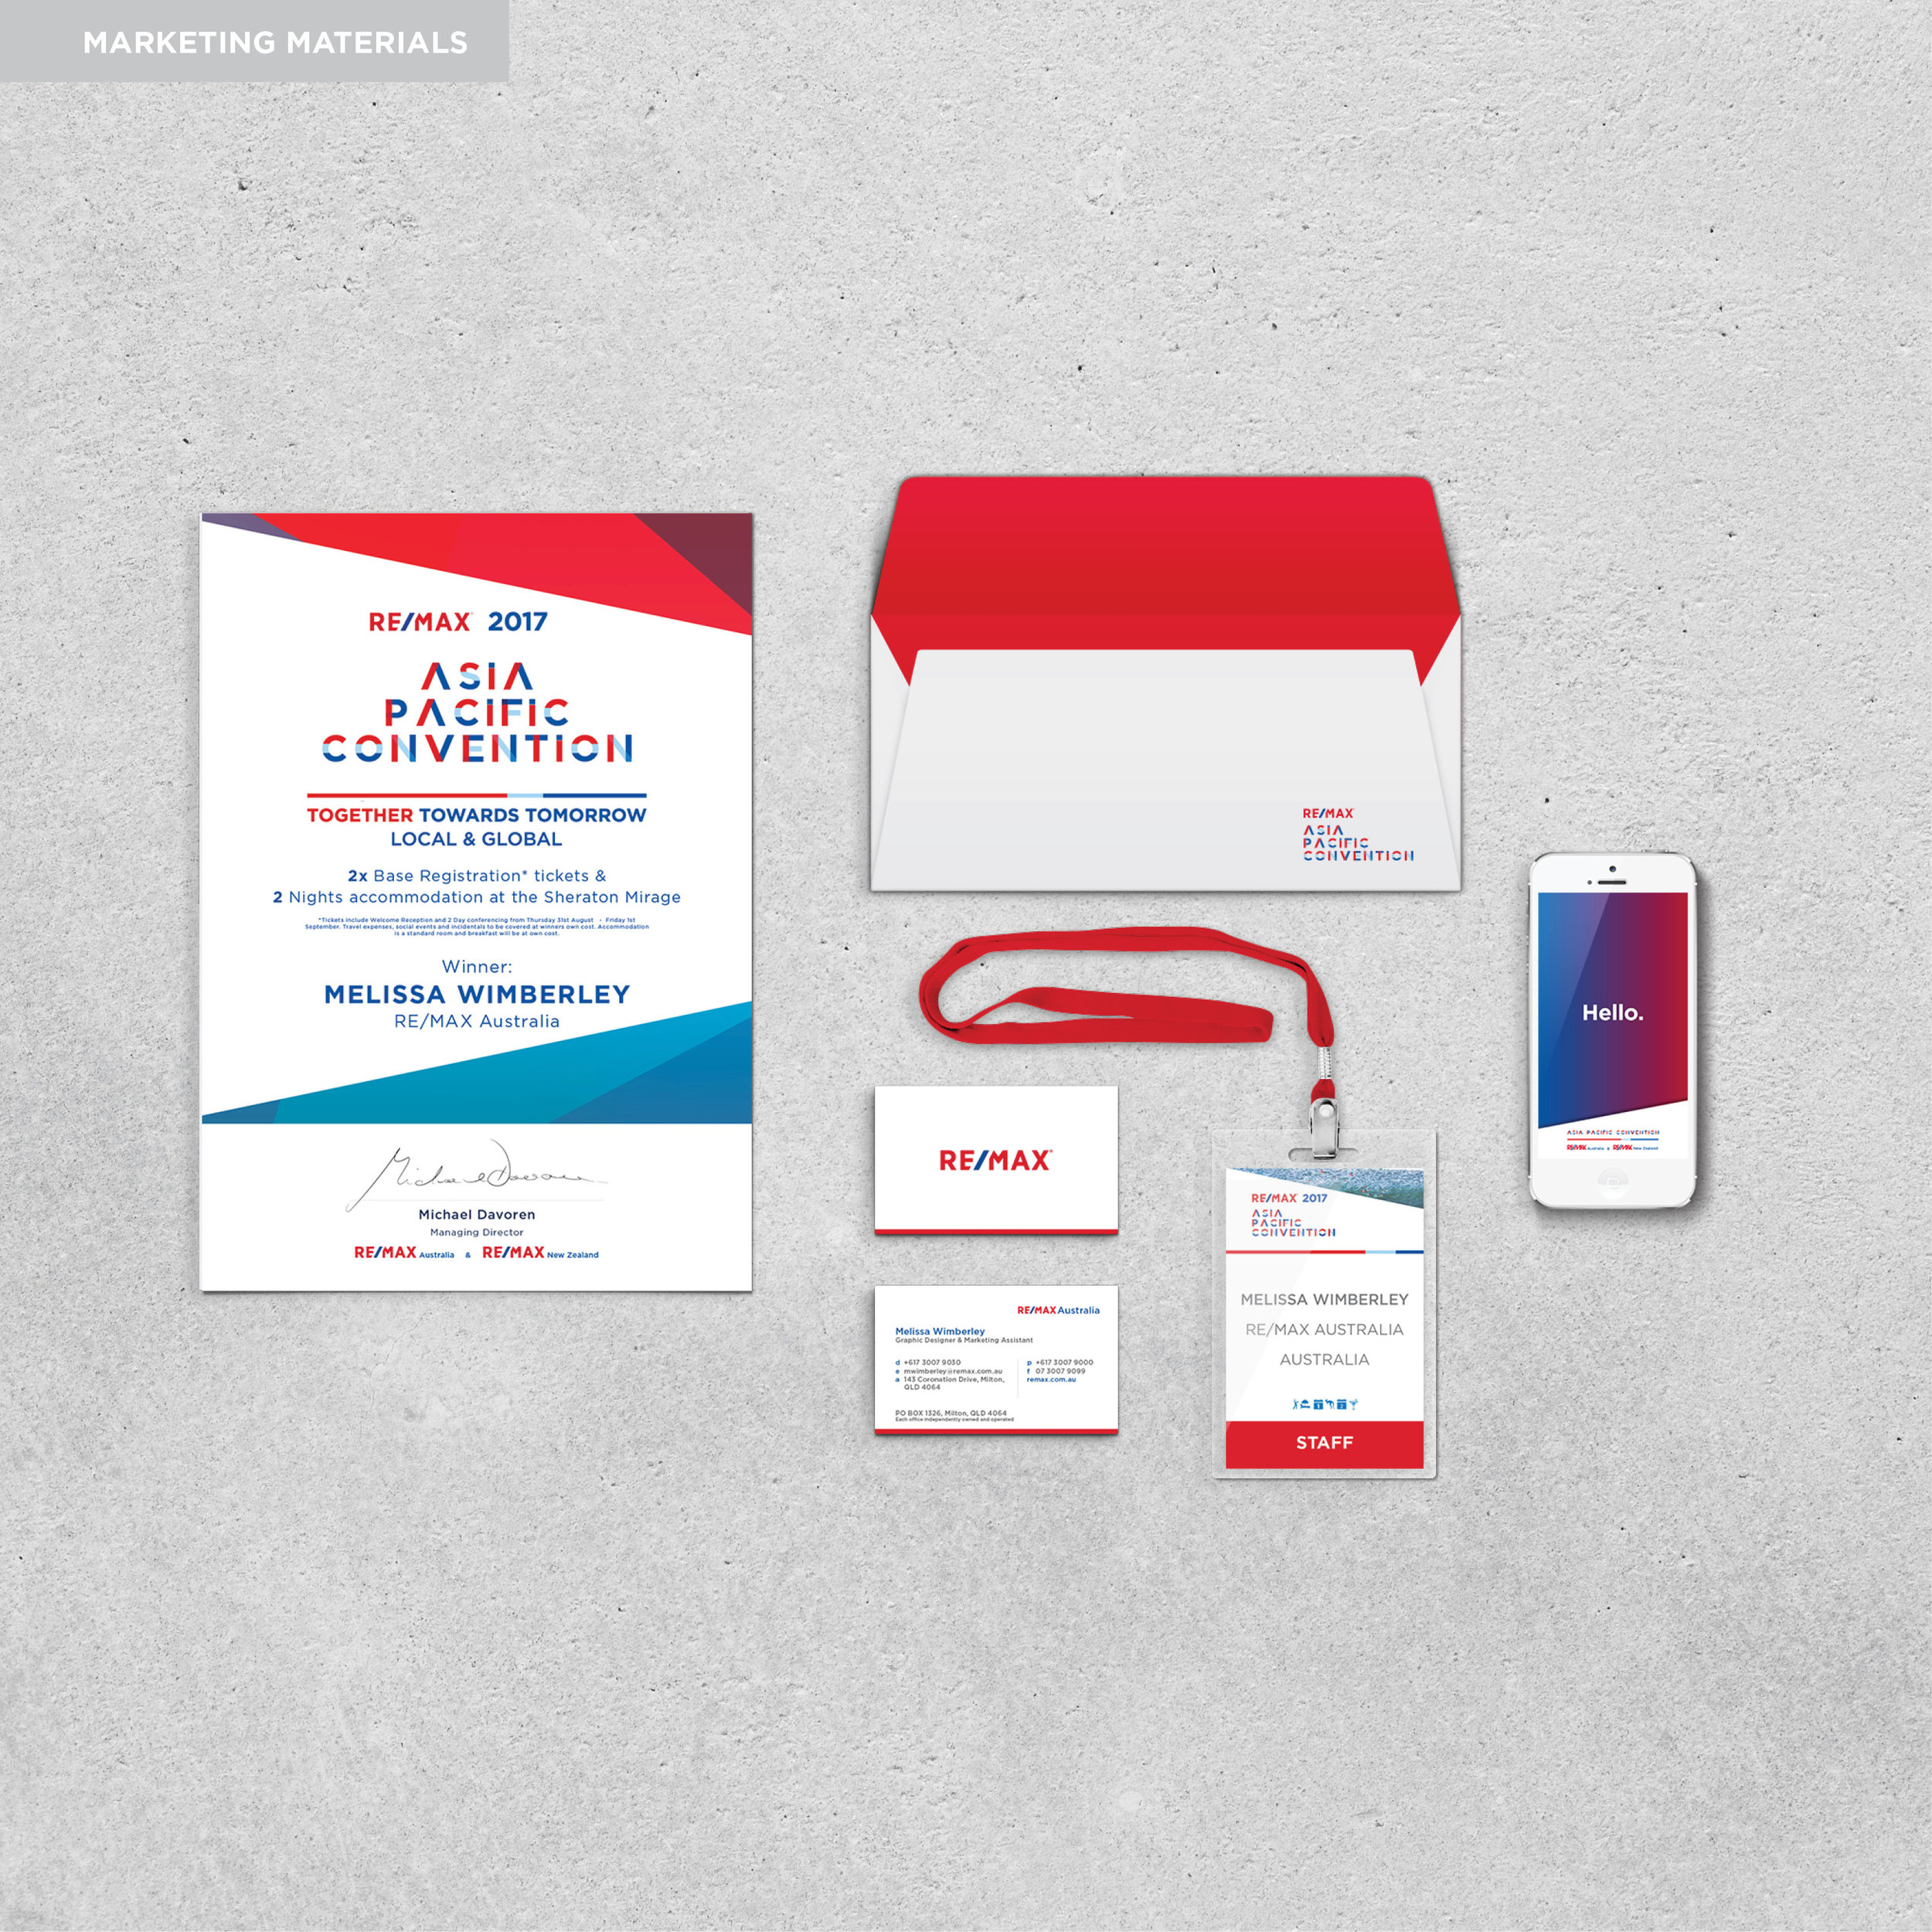 Asia Pacific Convention - Branding